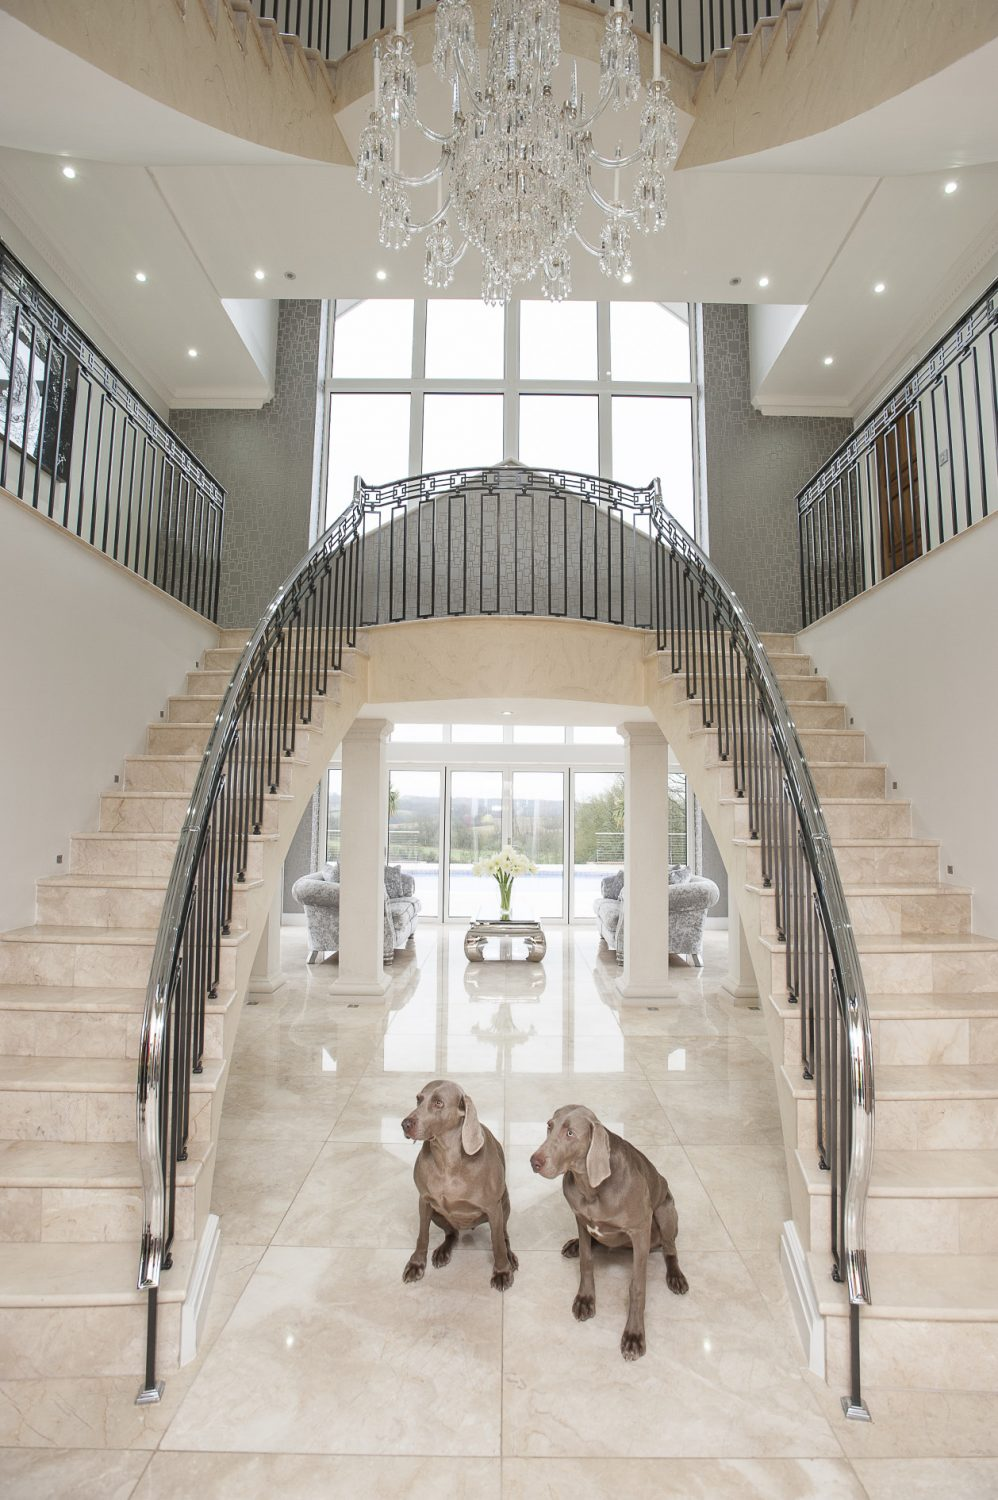 The chrome-on-brass Art Deco metalwork banister is a one-off designed exclusively for the house by Burvills Ornamental Metalwork in Surrey. Suspended in its centre is a glittering four-and-a-half foot high, 14-stone Wilkinson chandelier...